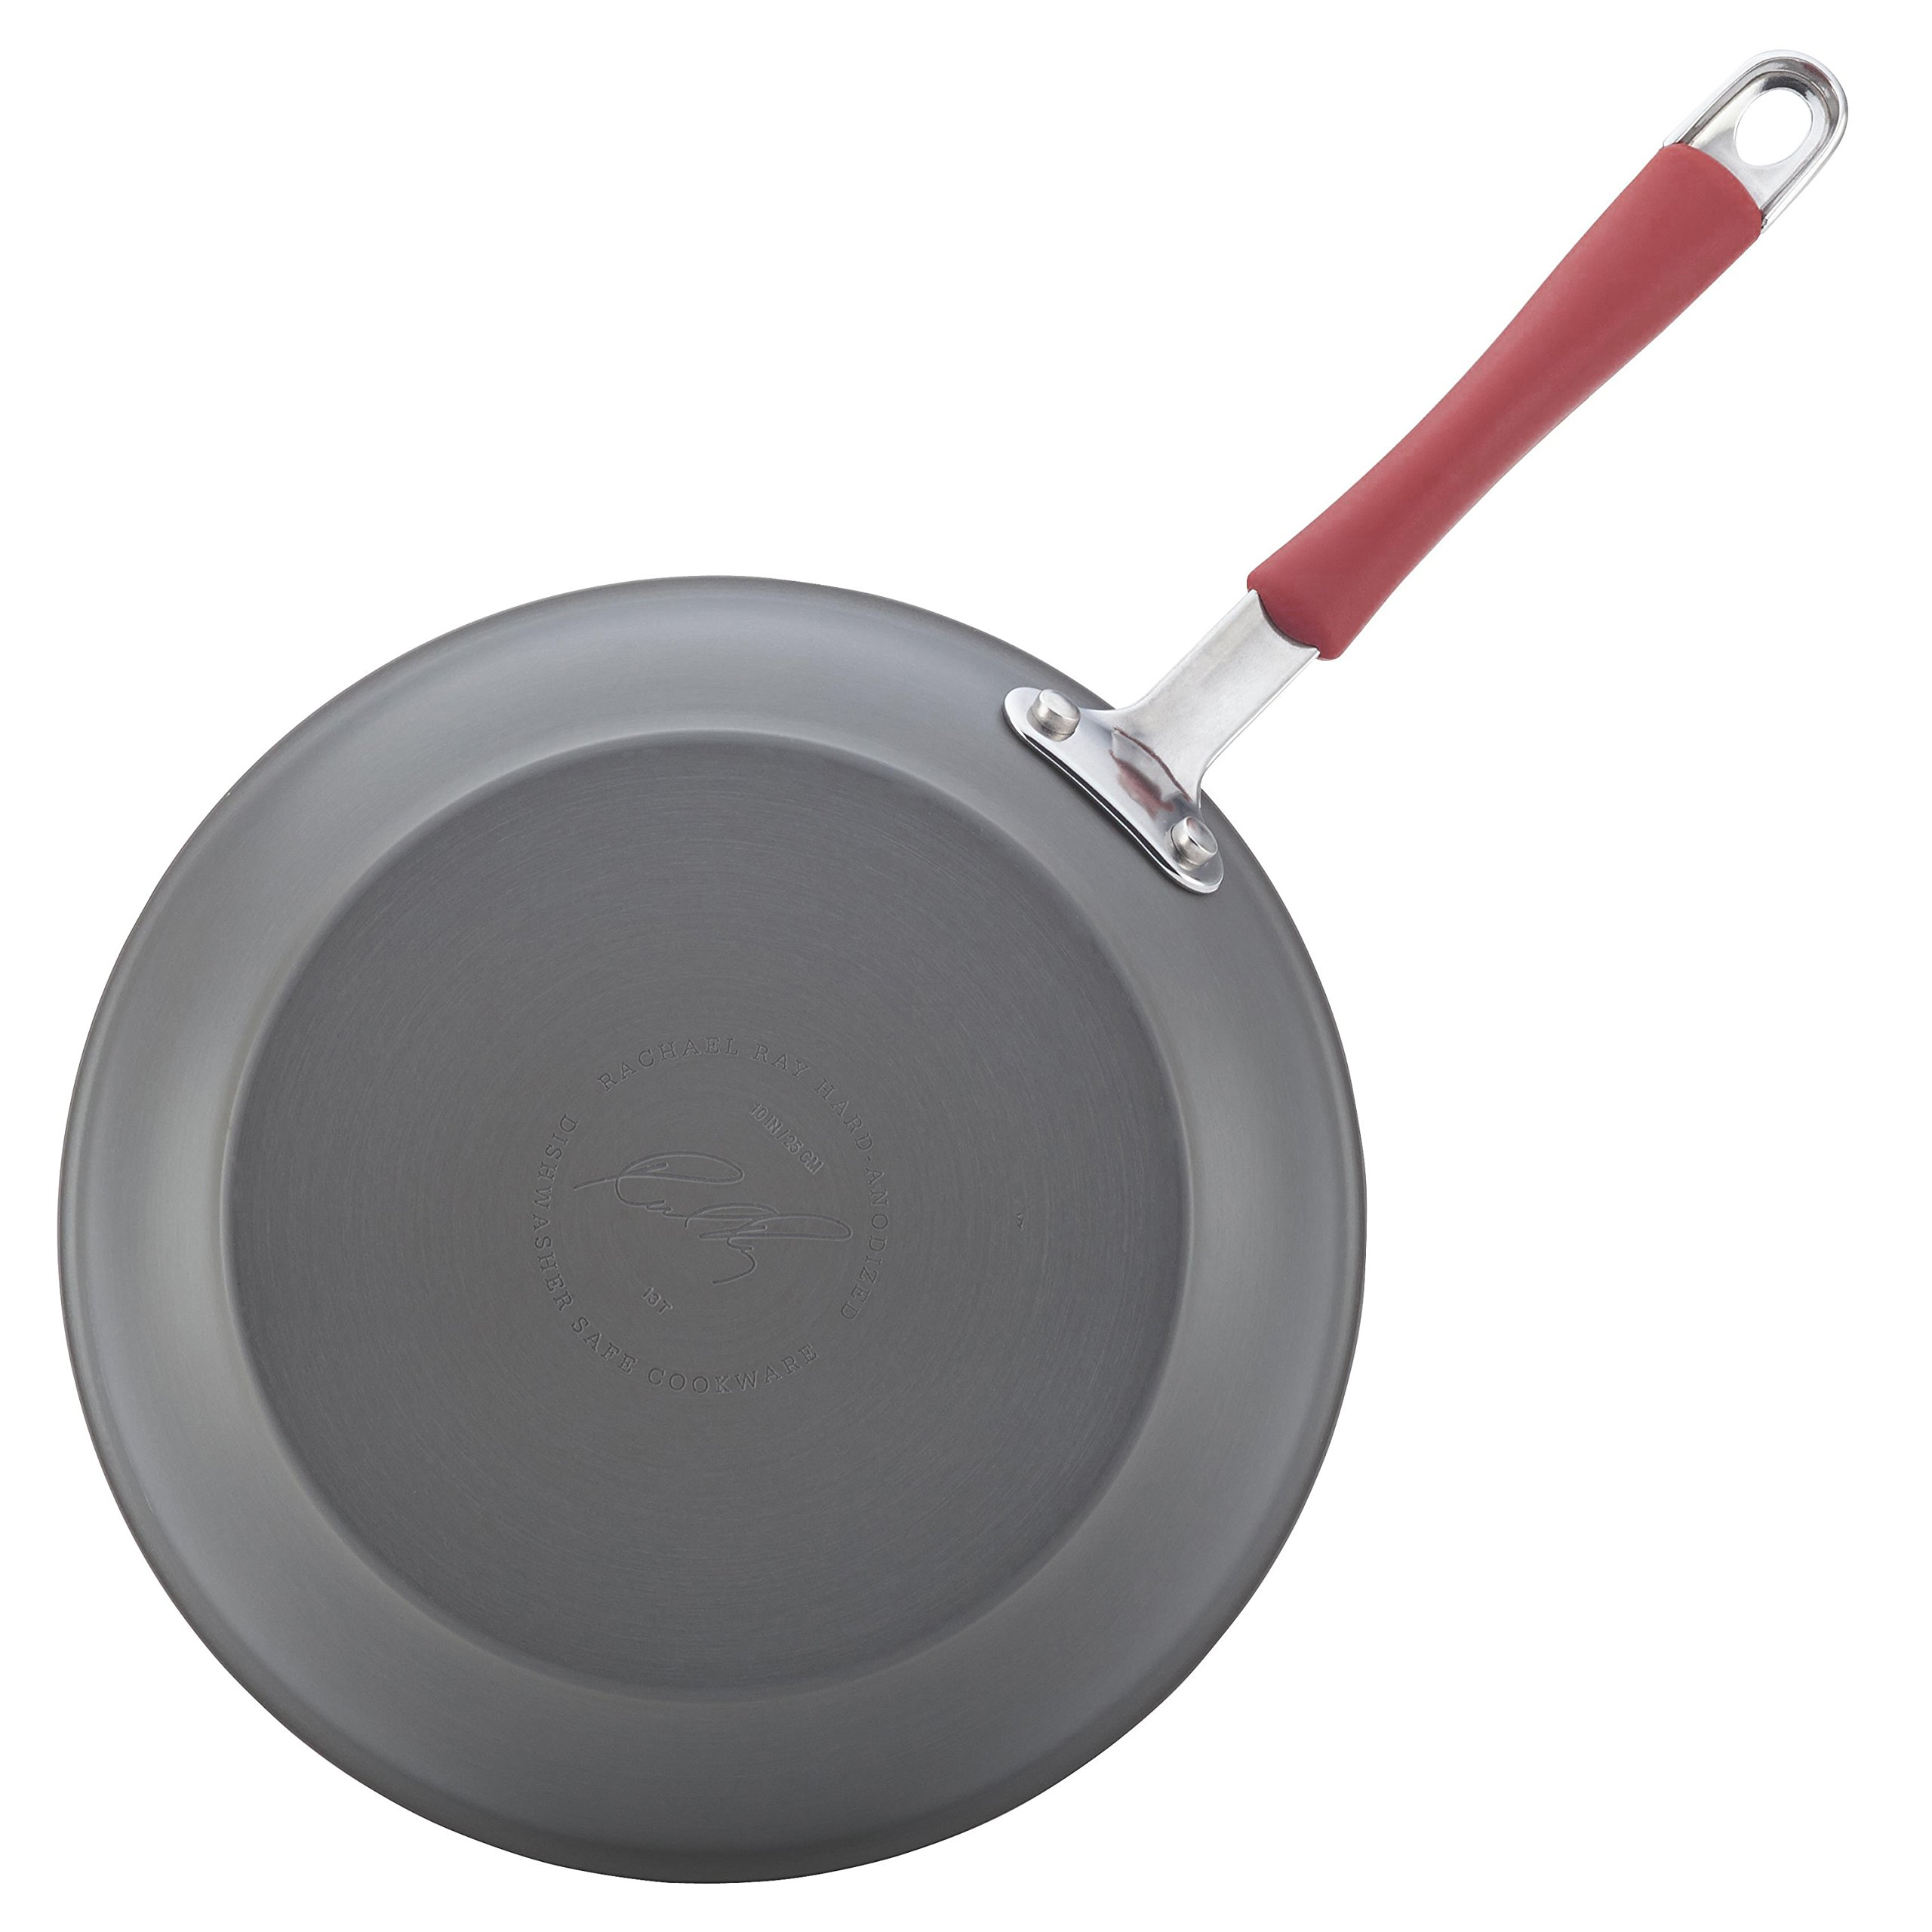 Rachael Ray Cucina Hard-Anodized Aluminum Nonstick Cookware Set, 12-Piece, Gray, Cranberry Red Handles by Rachael Ray (Image #7)